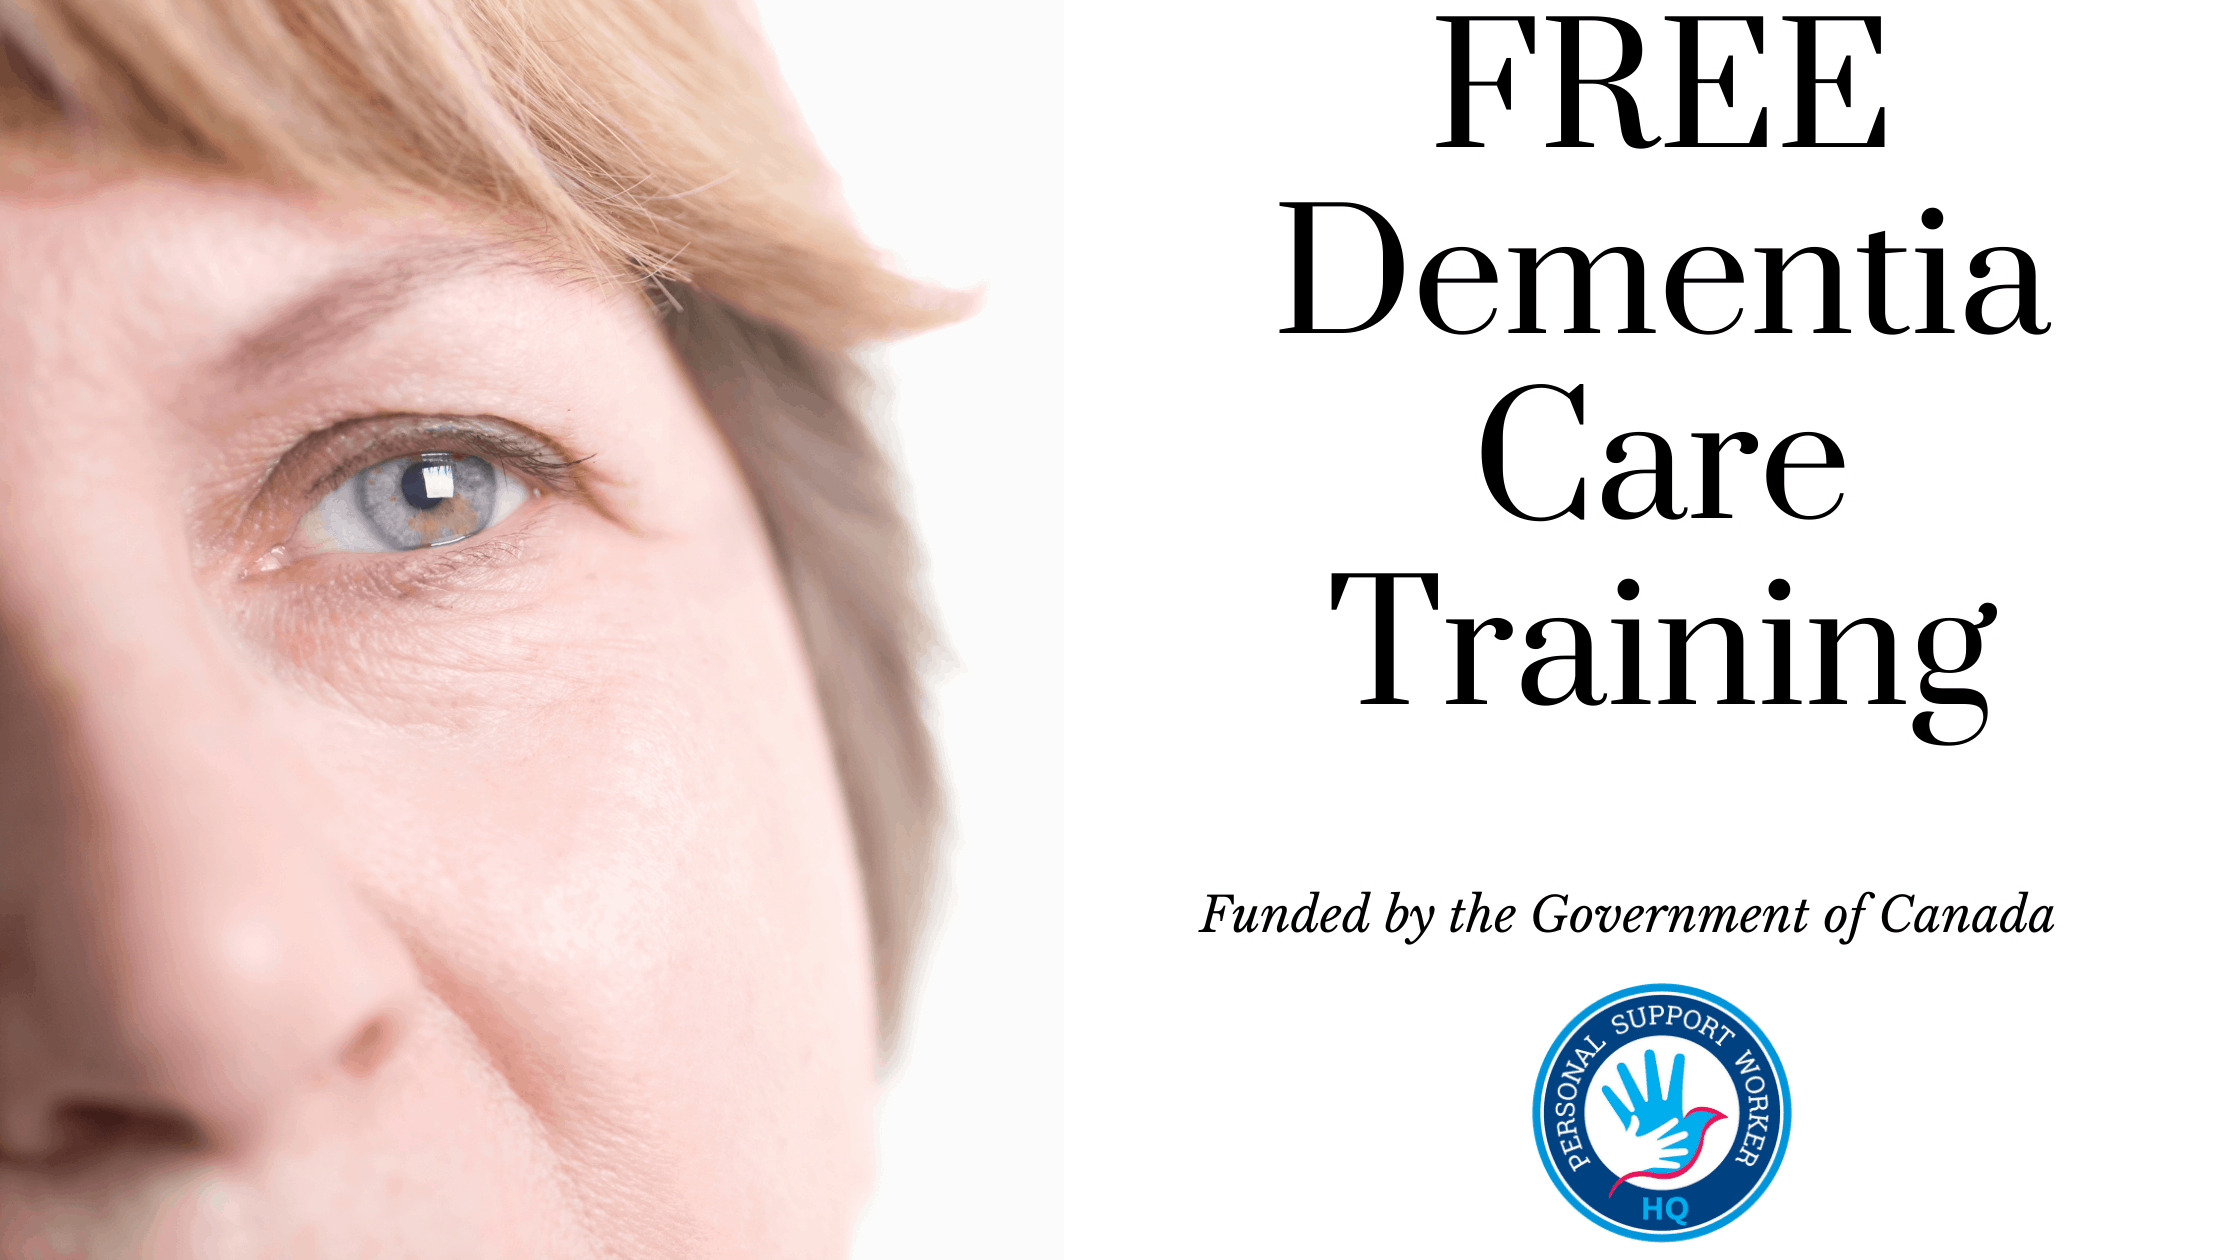 Free dementia care training funded by the Government of Canada